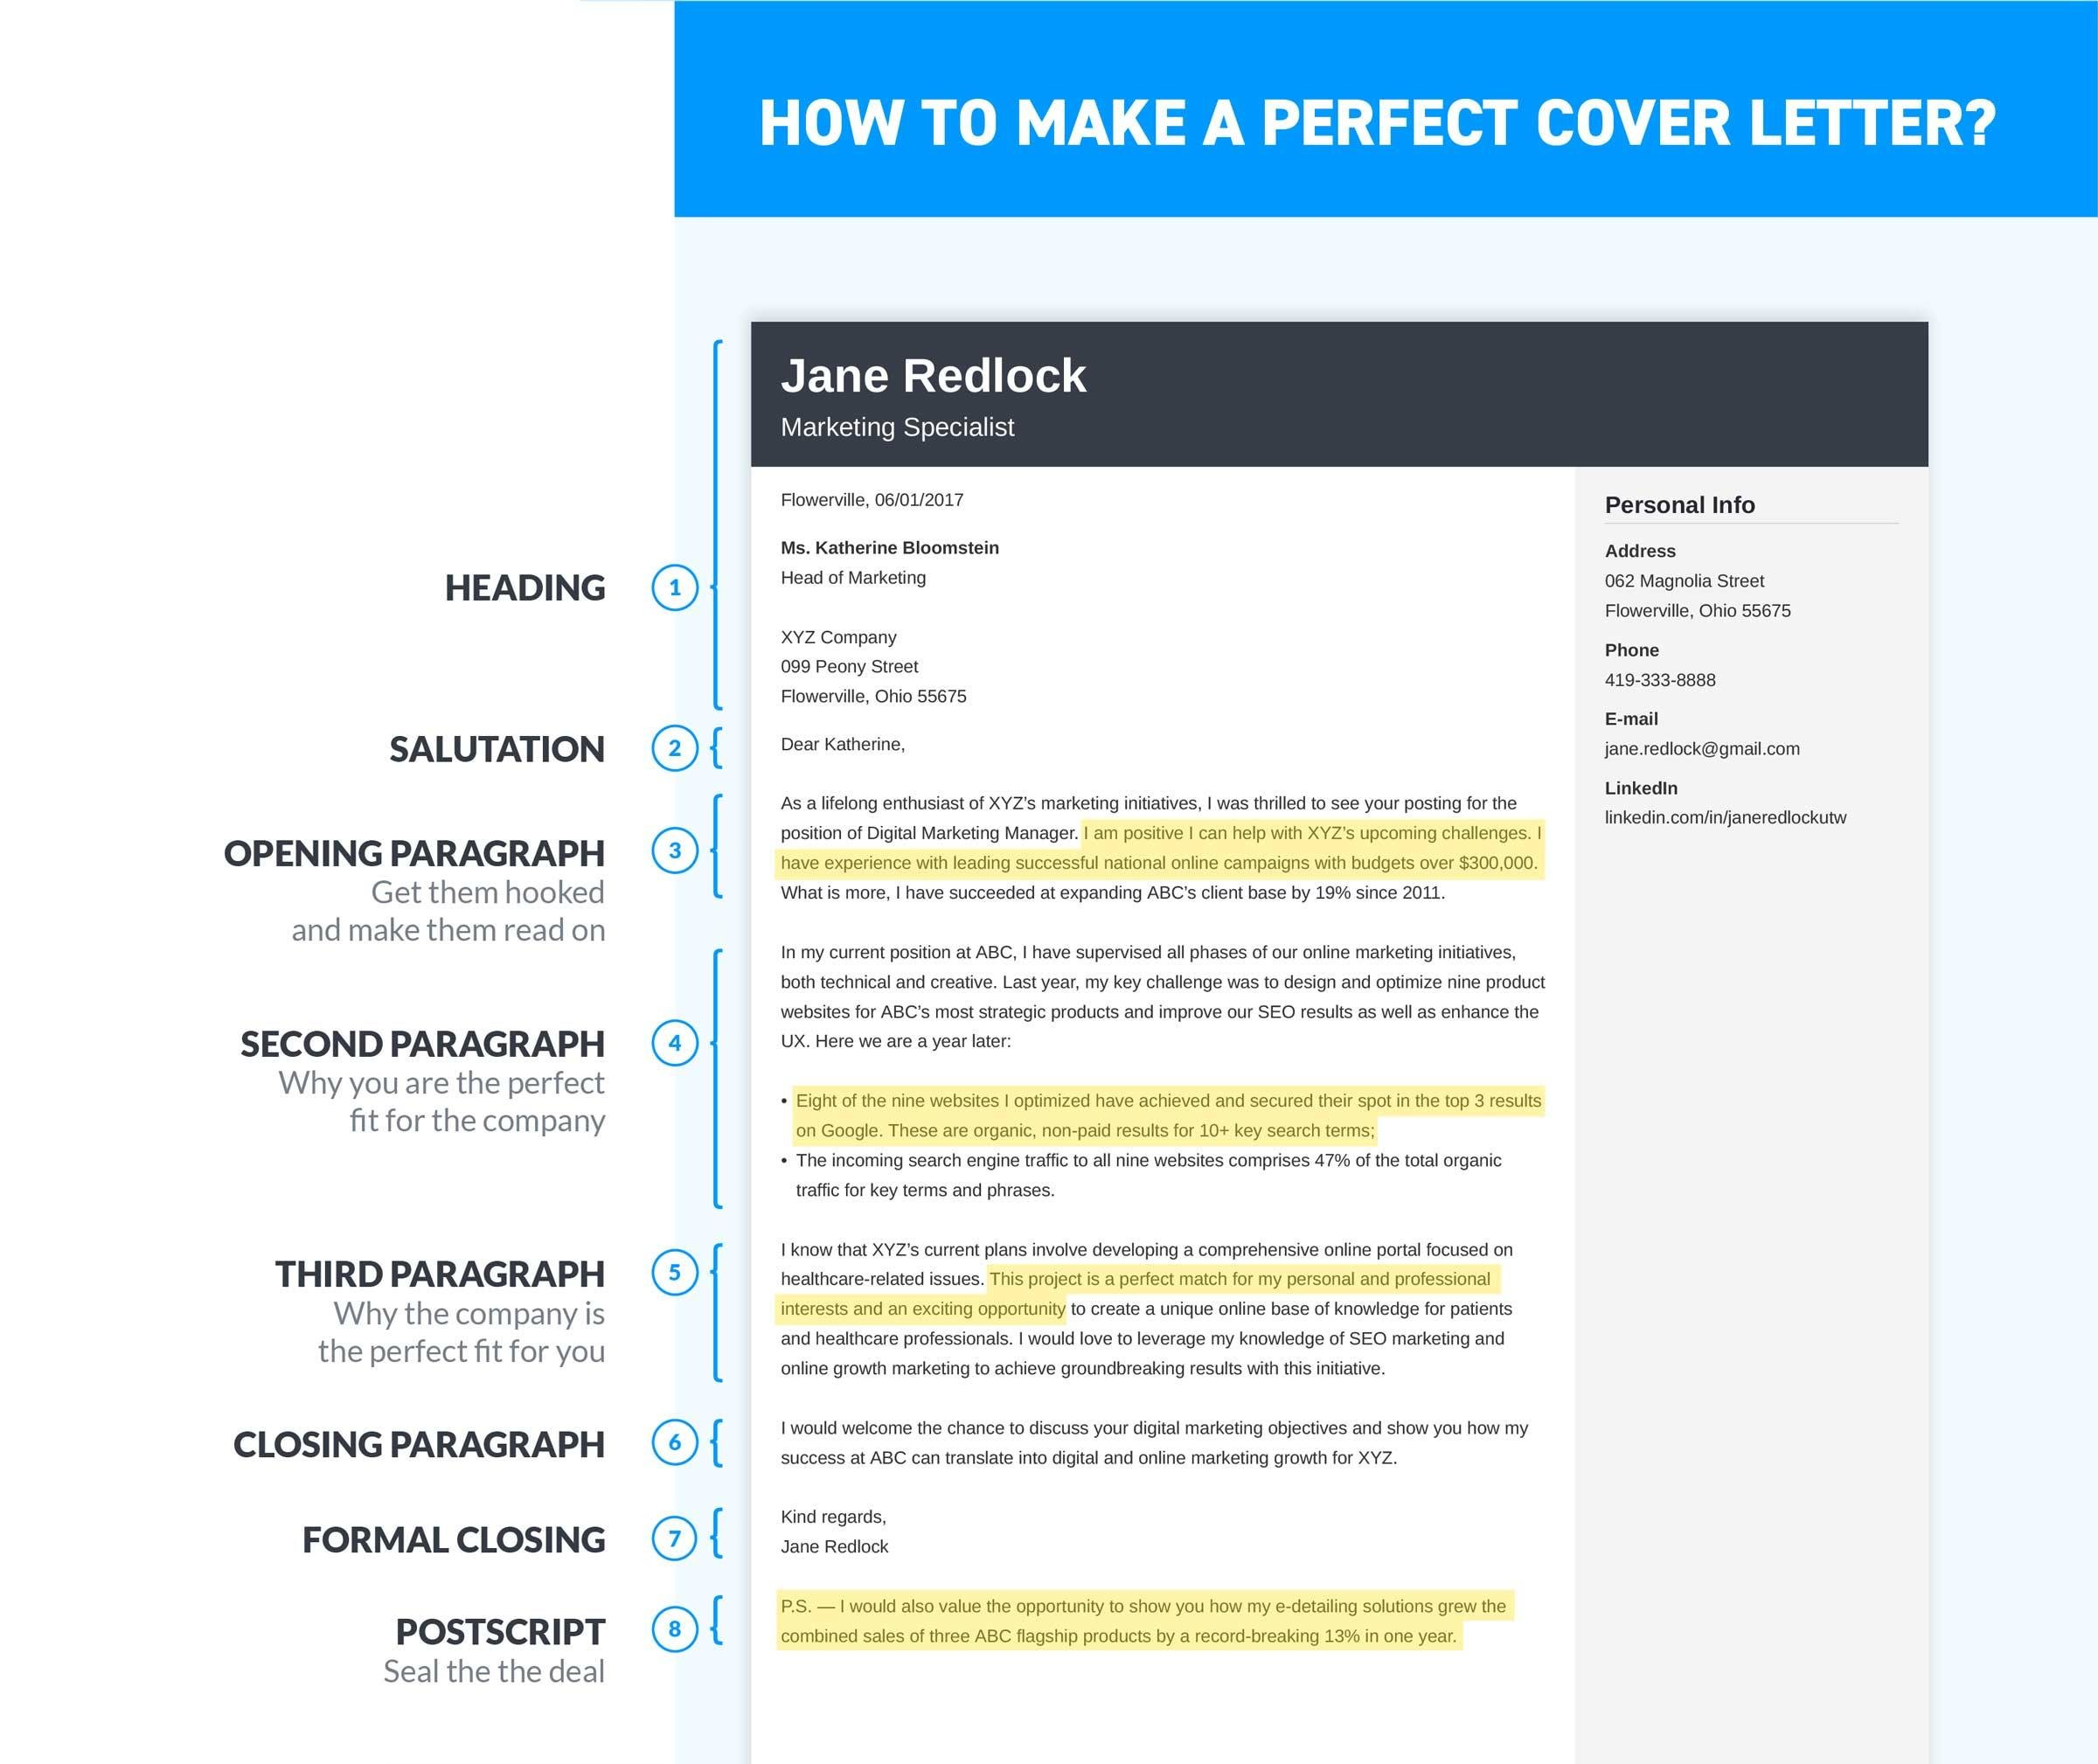 Cover Letters Read Now | How To Write A Cover Letter In 8 Simple Steps 12 Examples